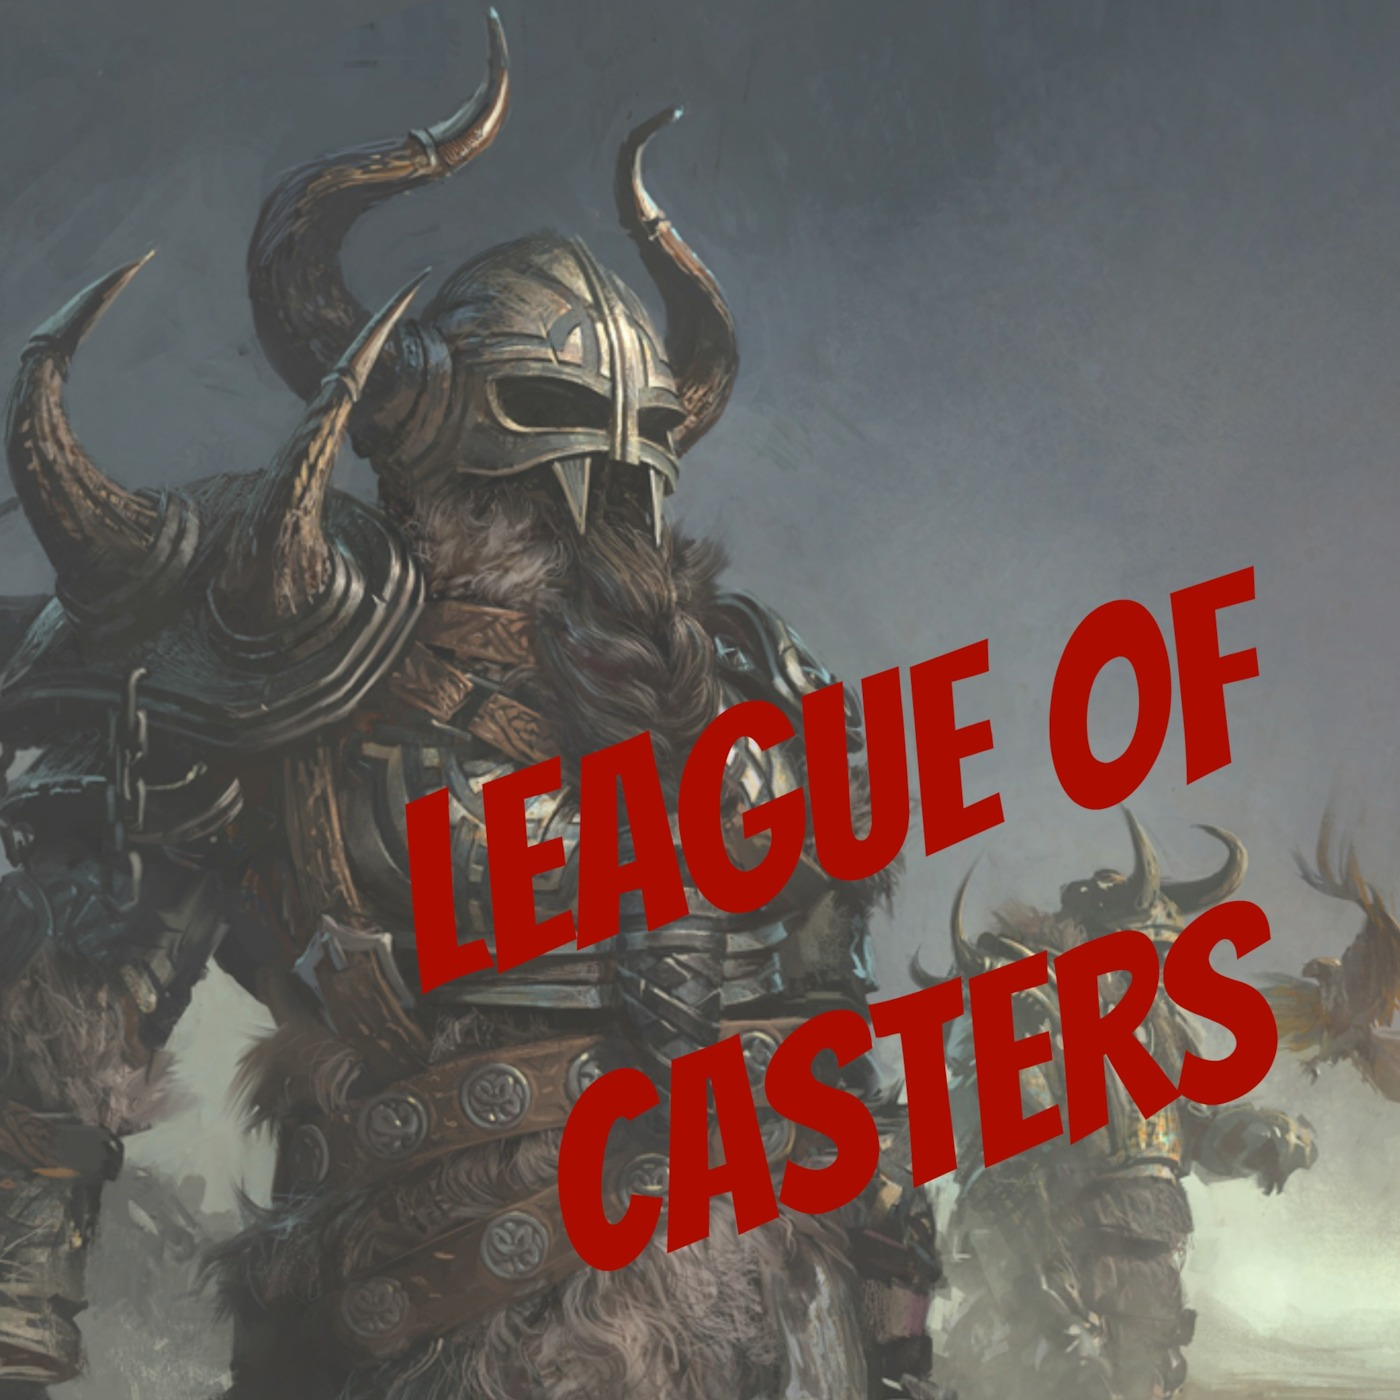 League of Casters